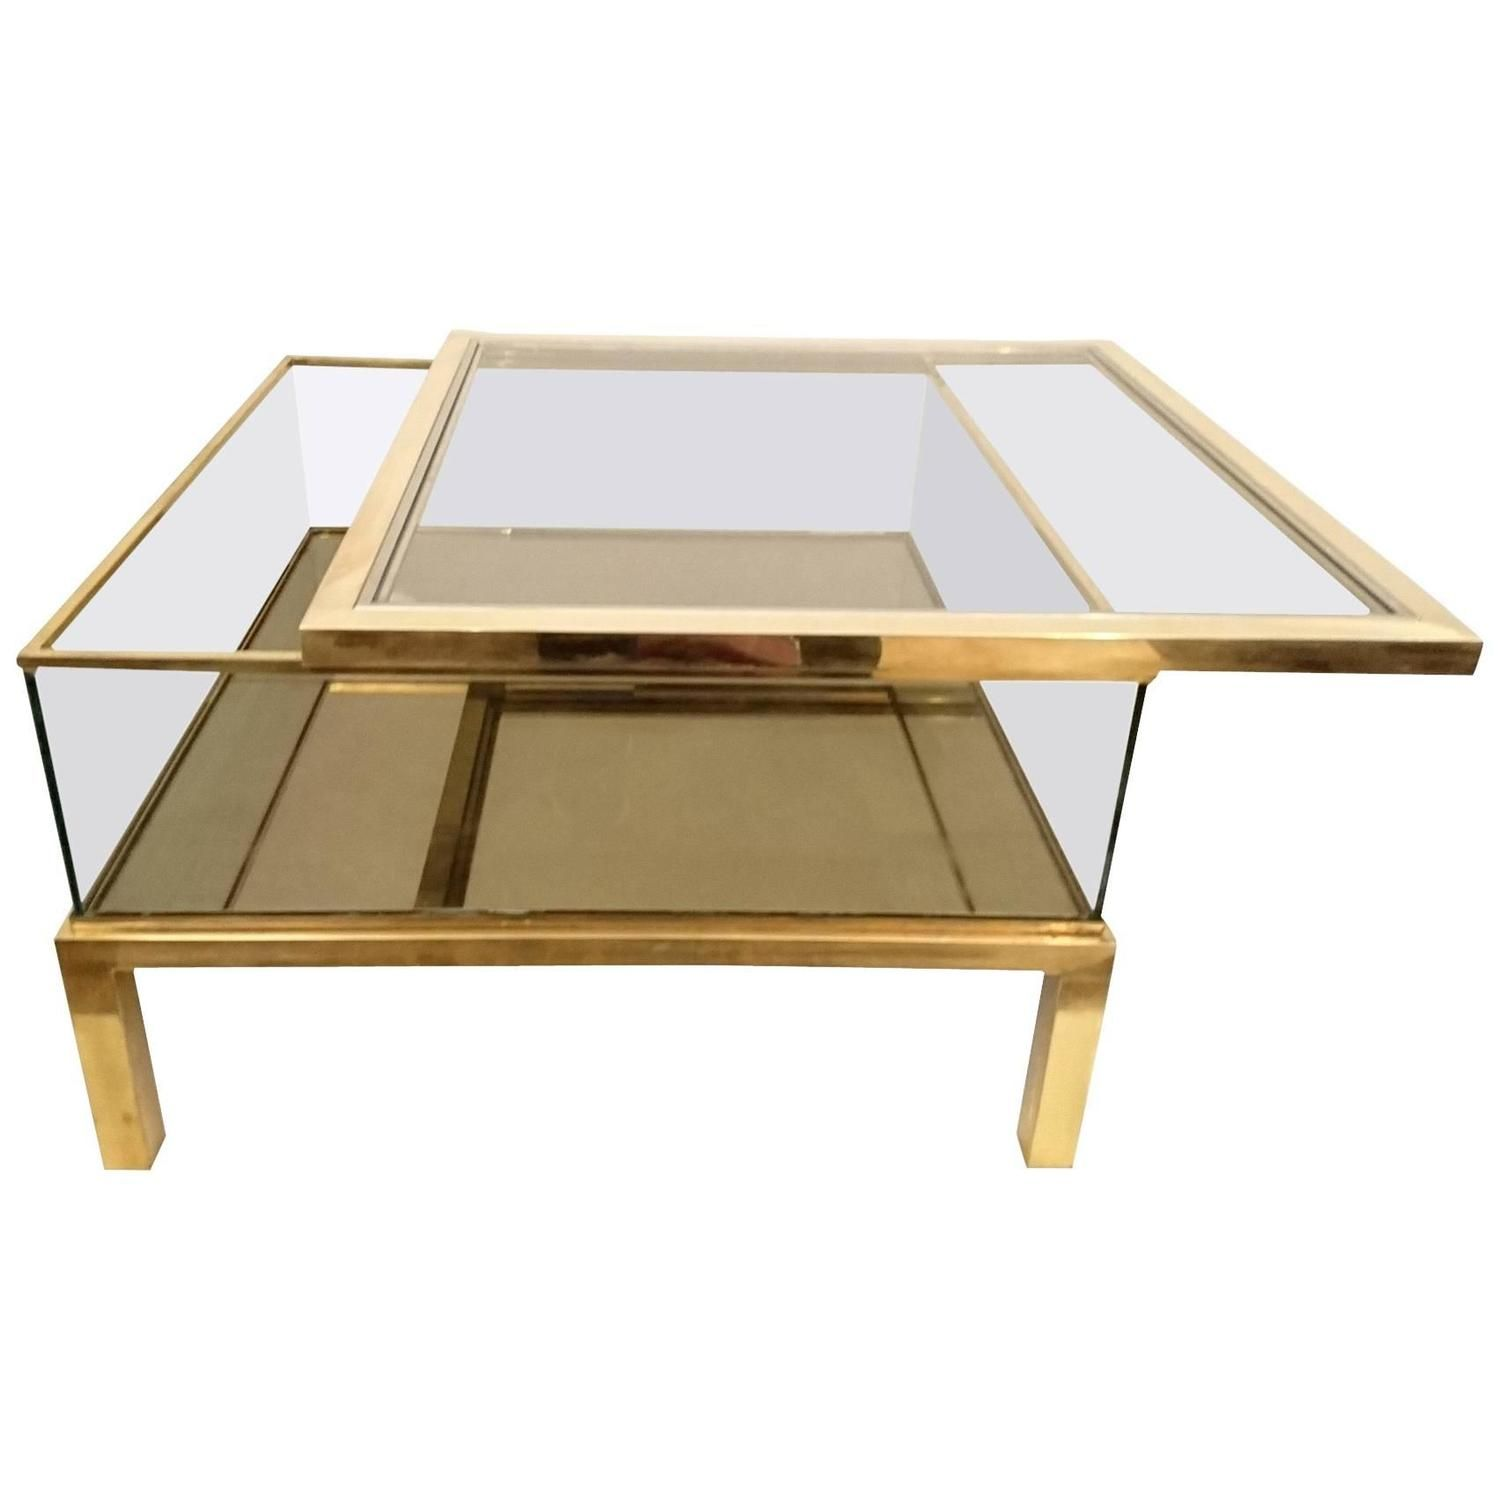 Sliding Top Coffee Table Glass And Brass Glass Coffee Table Coffee Table Brass Coffee Table [ 1500 x 1500 Pixel ]